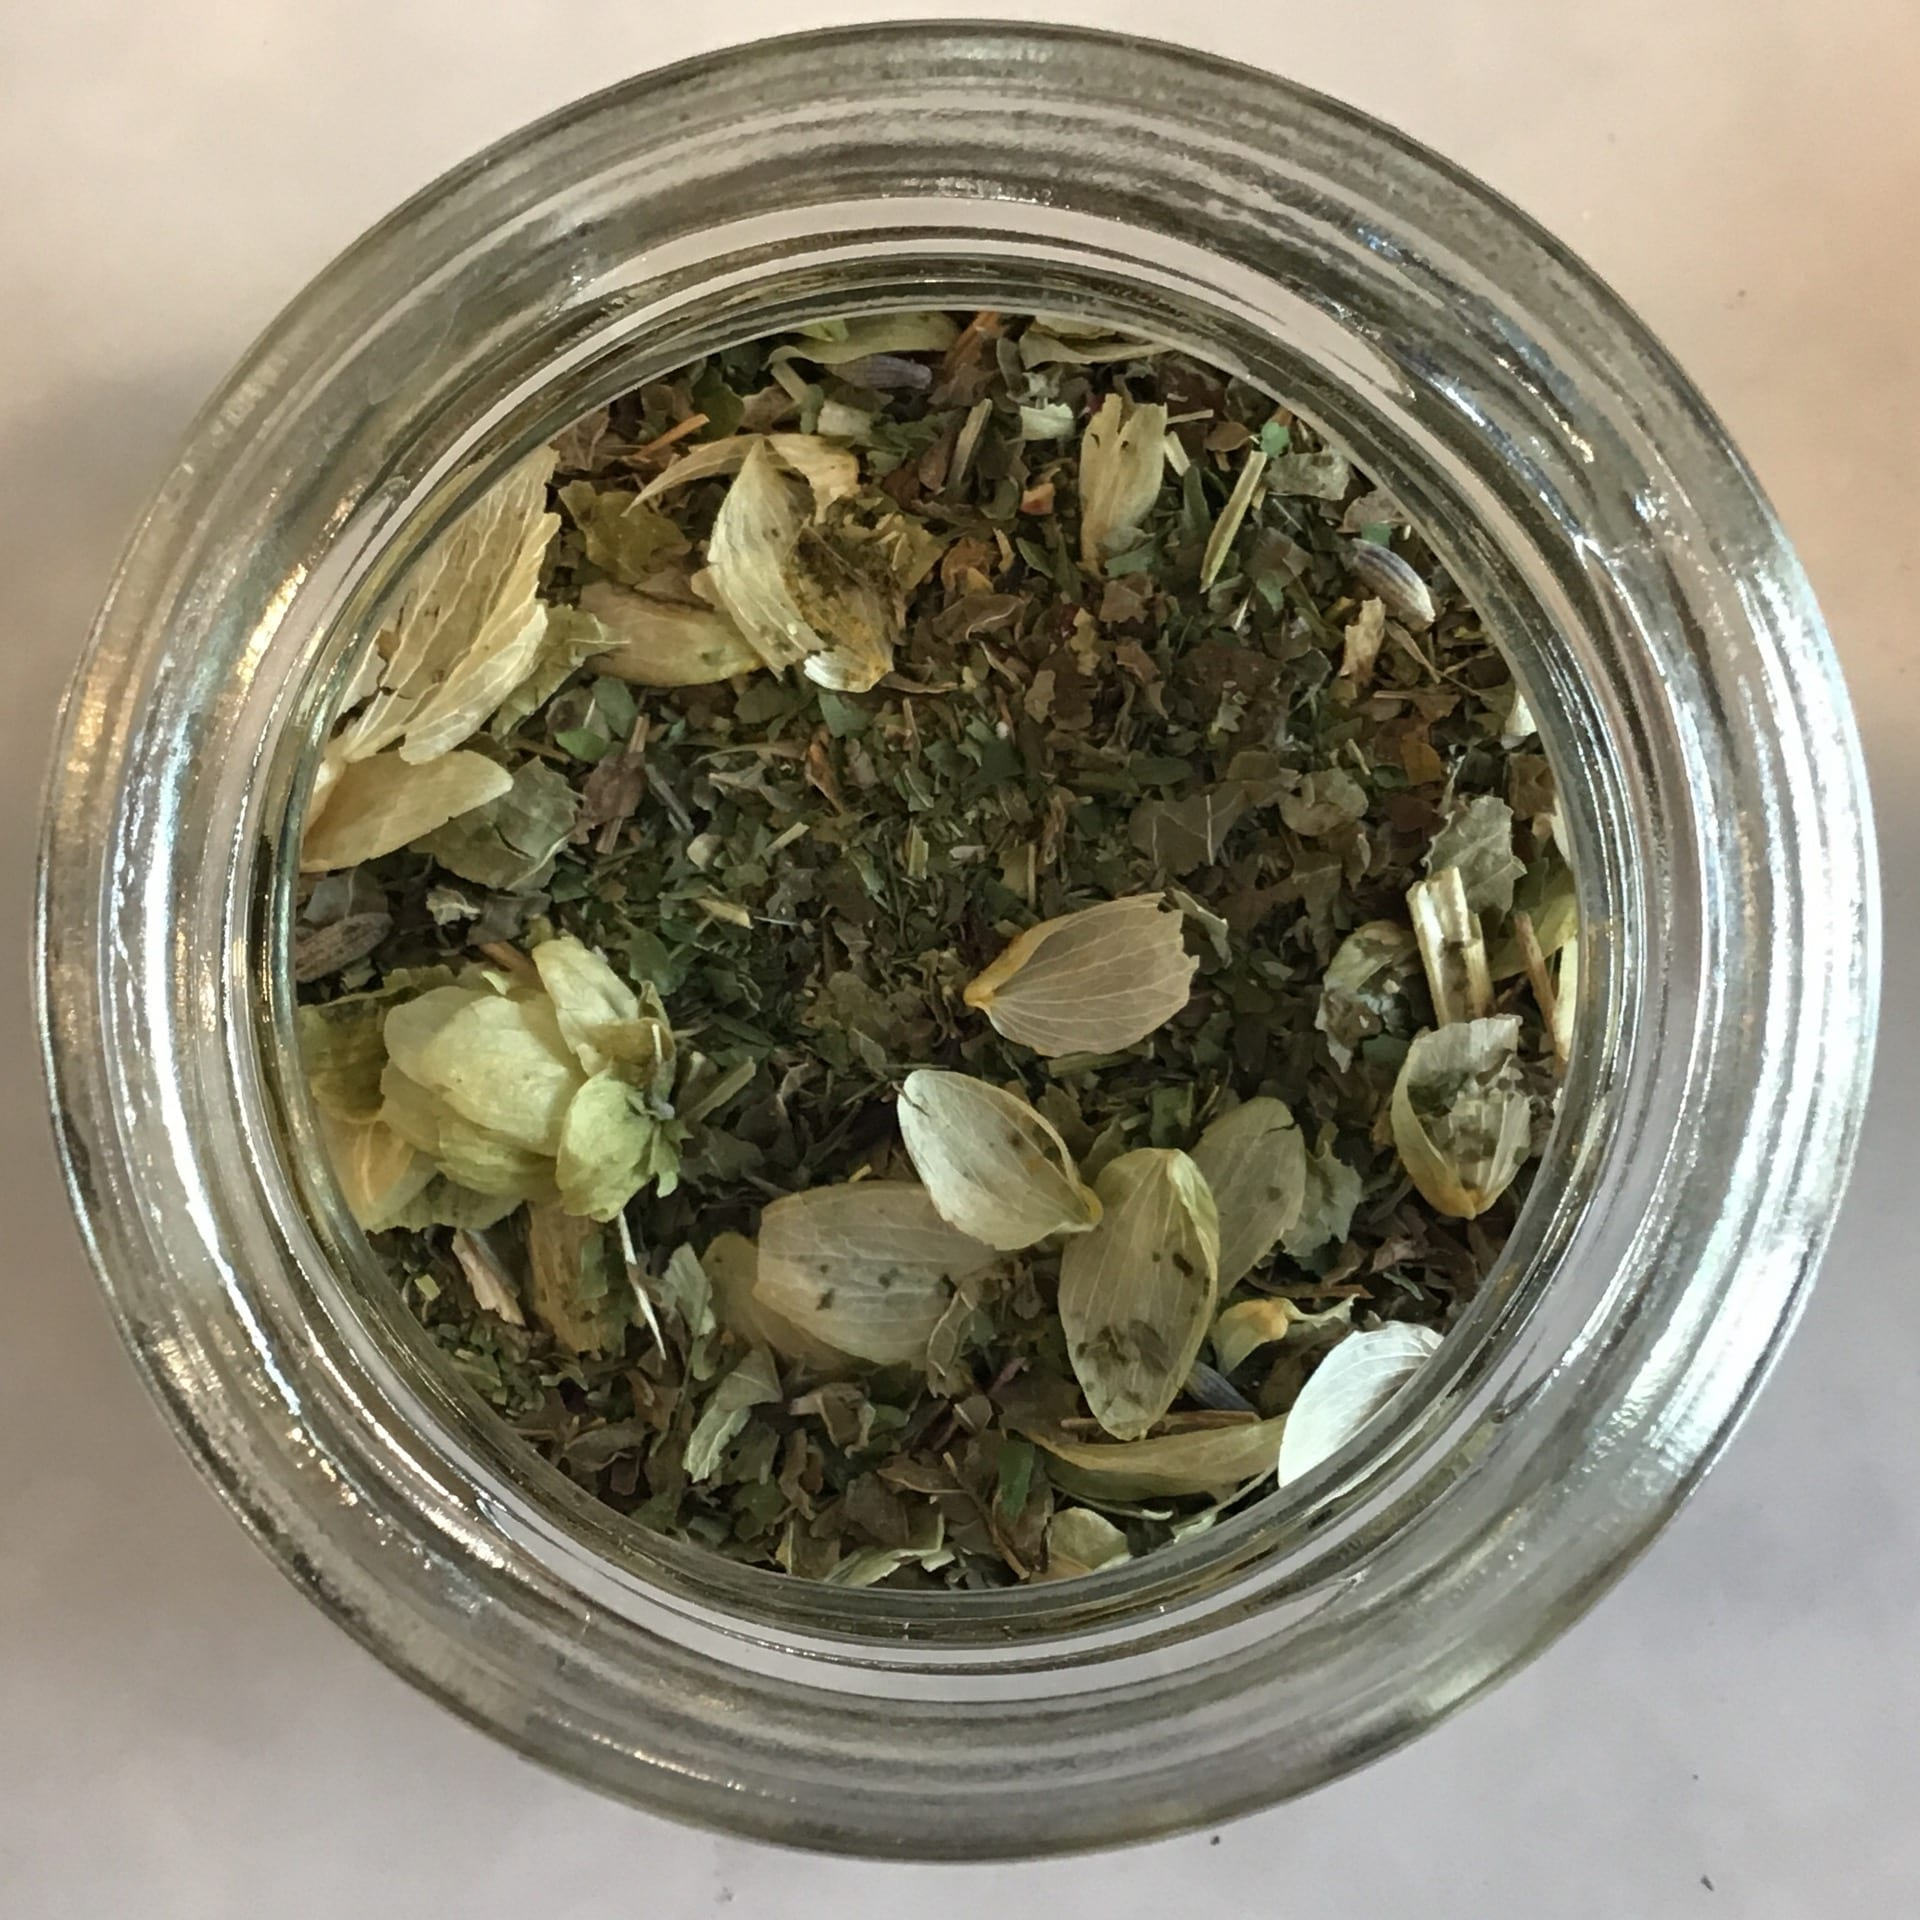 Night tea will help you fall asleep with a touch of valerian root and hops